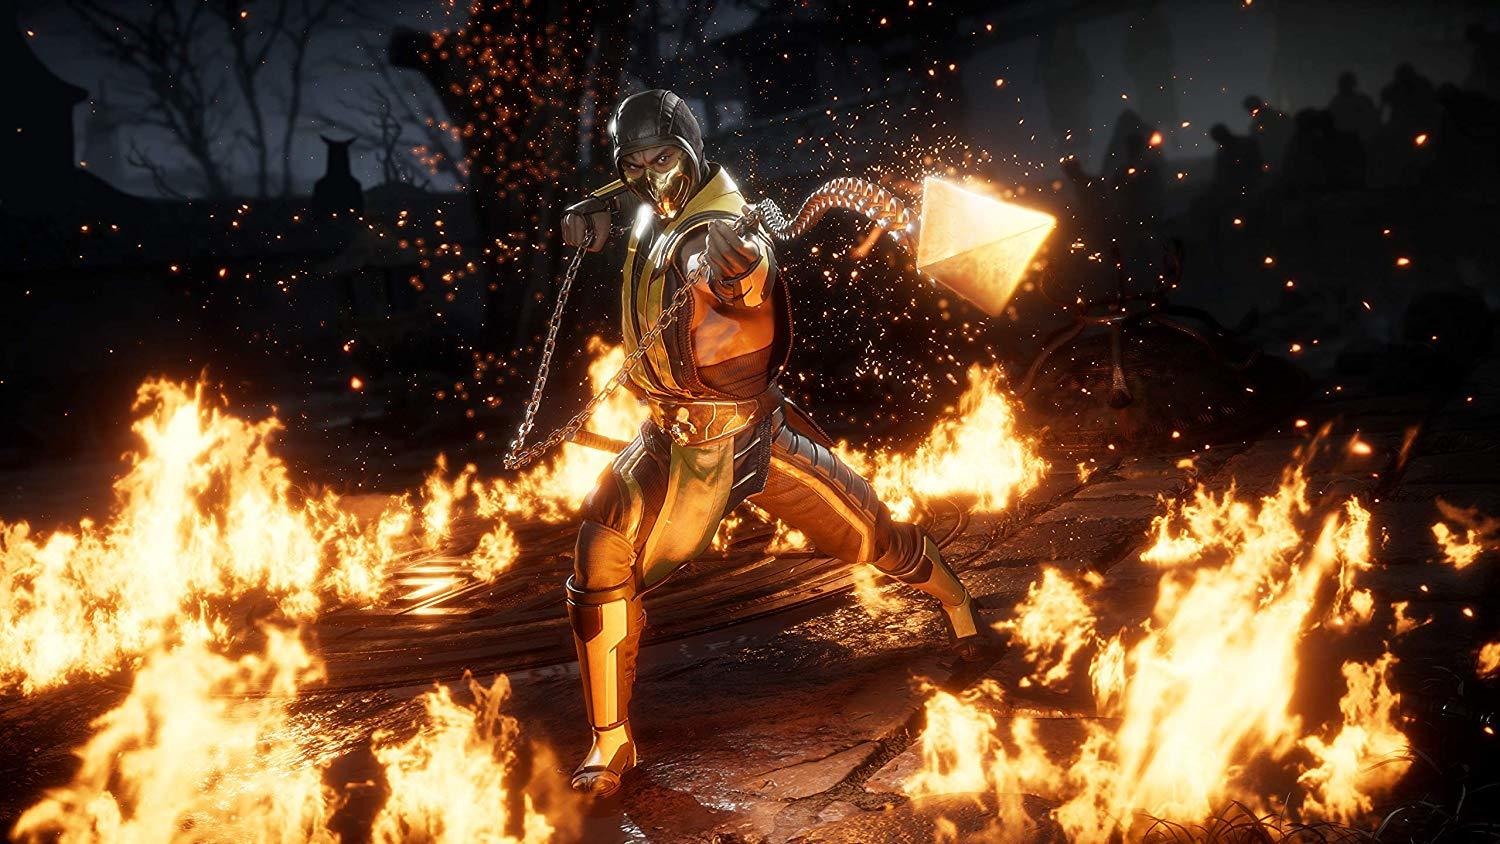 Mortal Kombat 11 Closed Beta Schedule Announced for PS4 and Xbox One